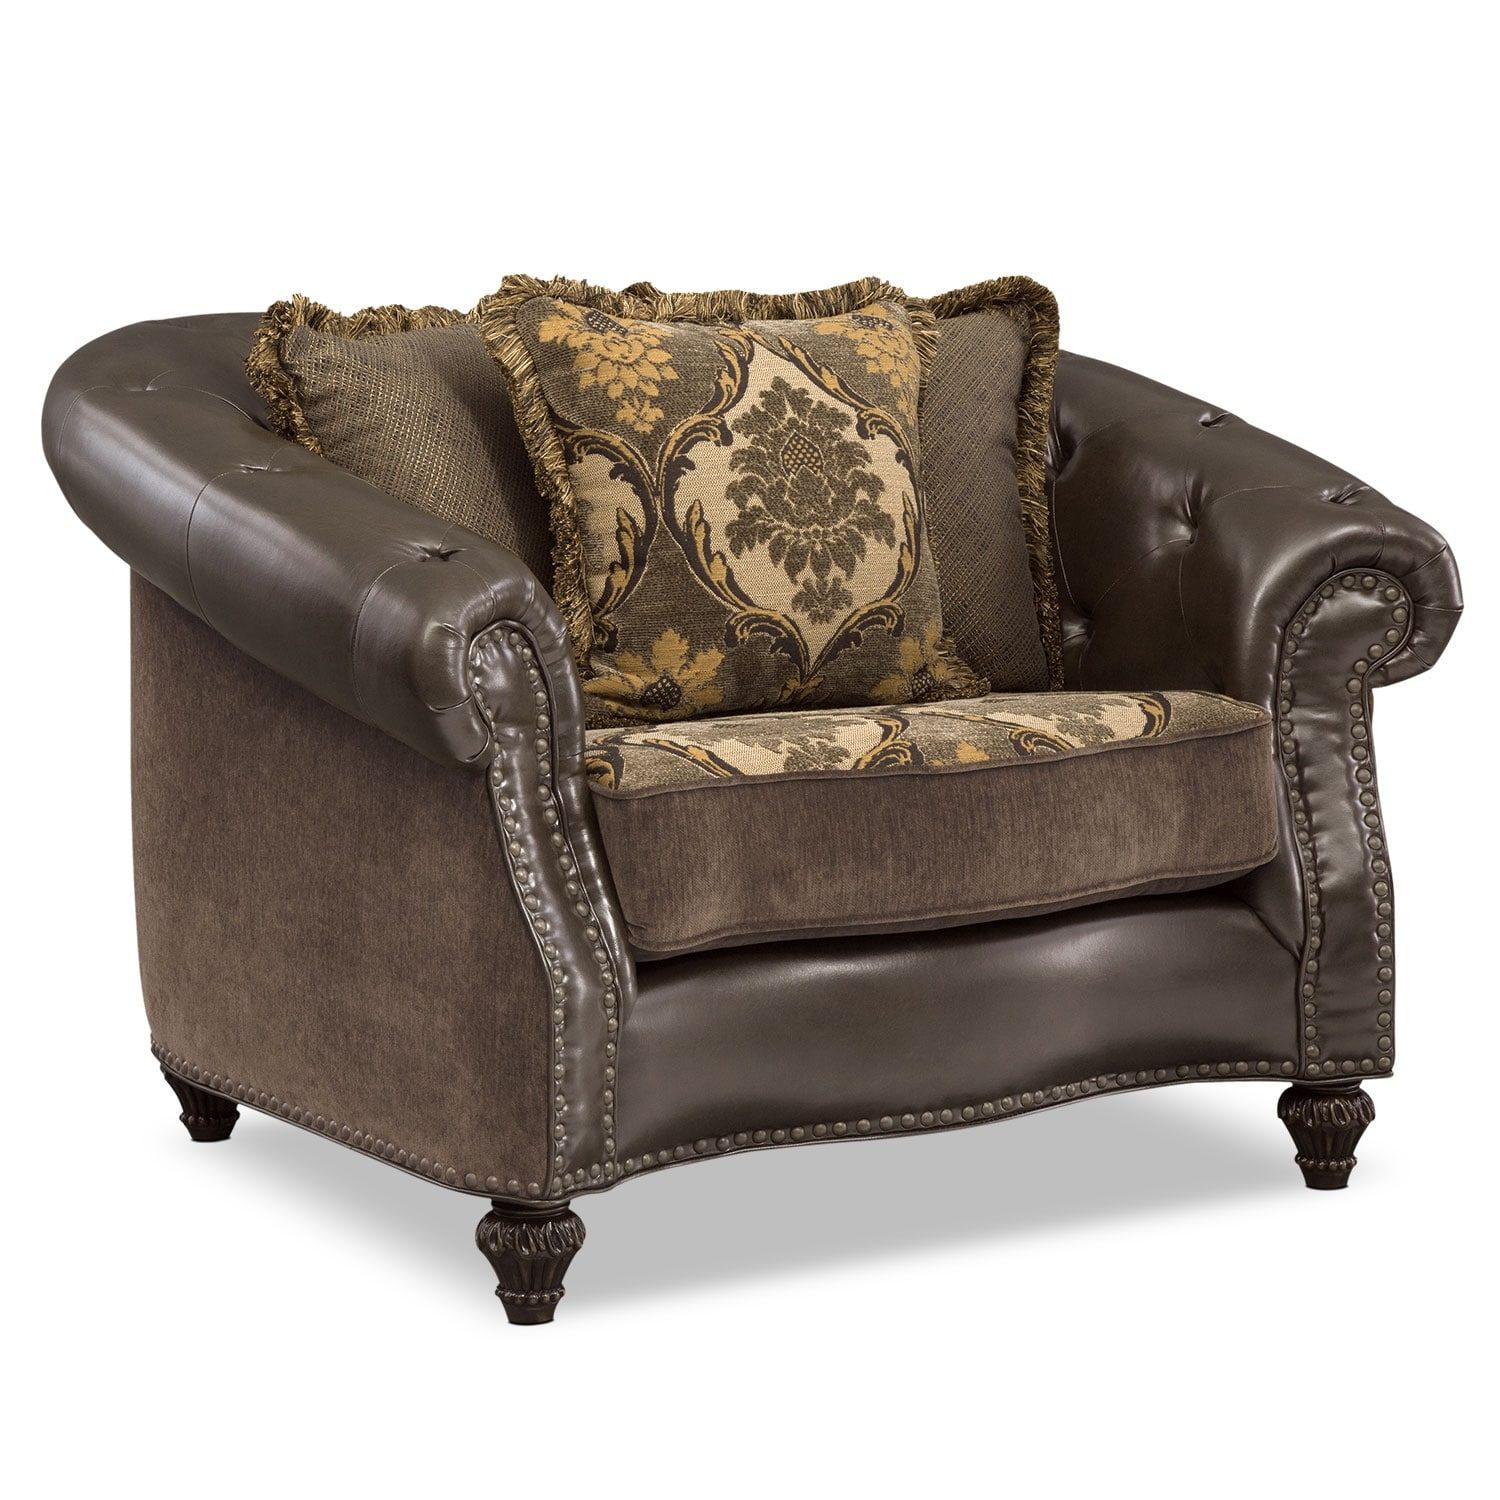 Living Room Furniture - Nicholas Chair - Chocolate